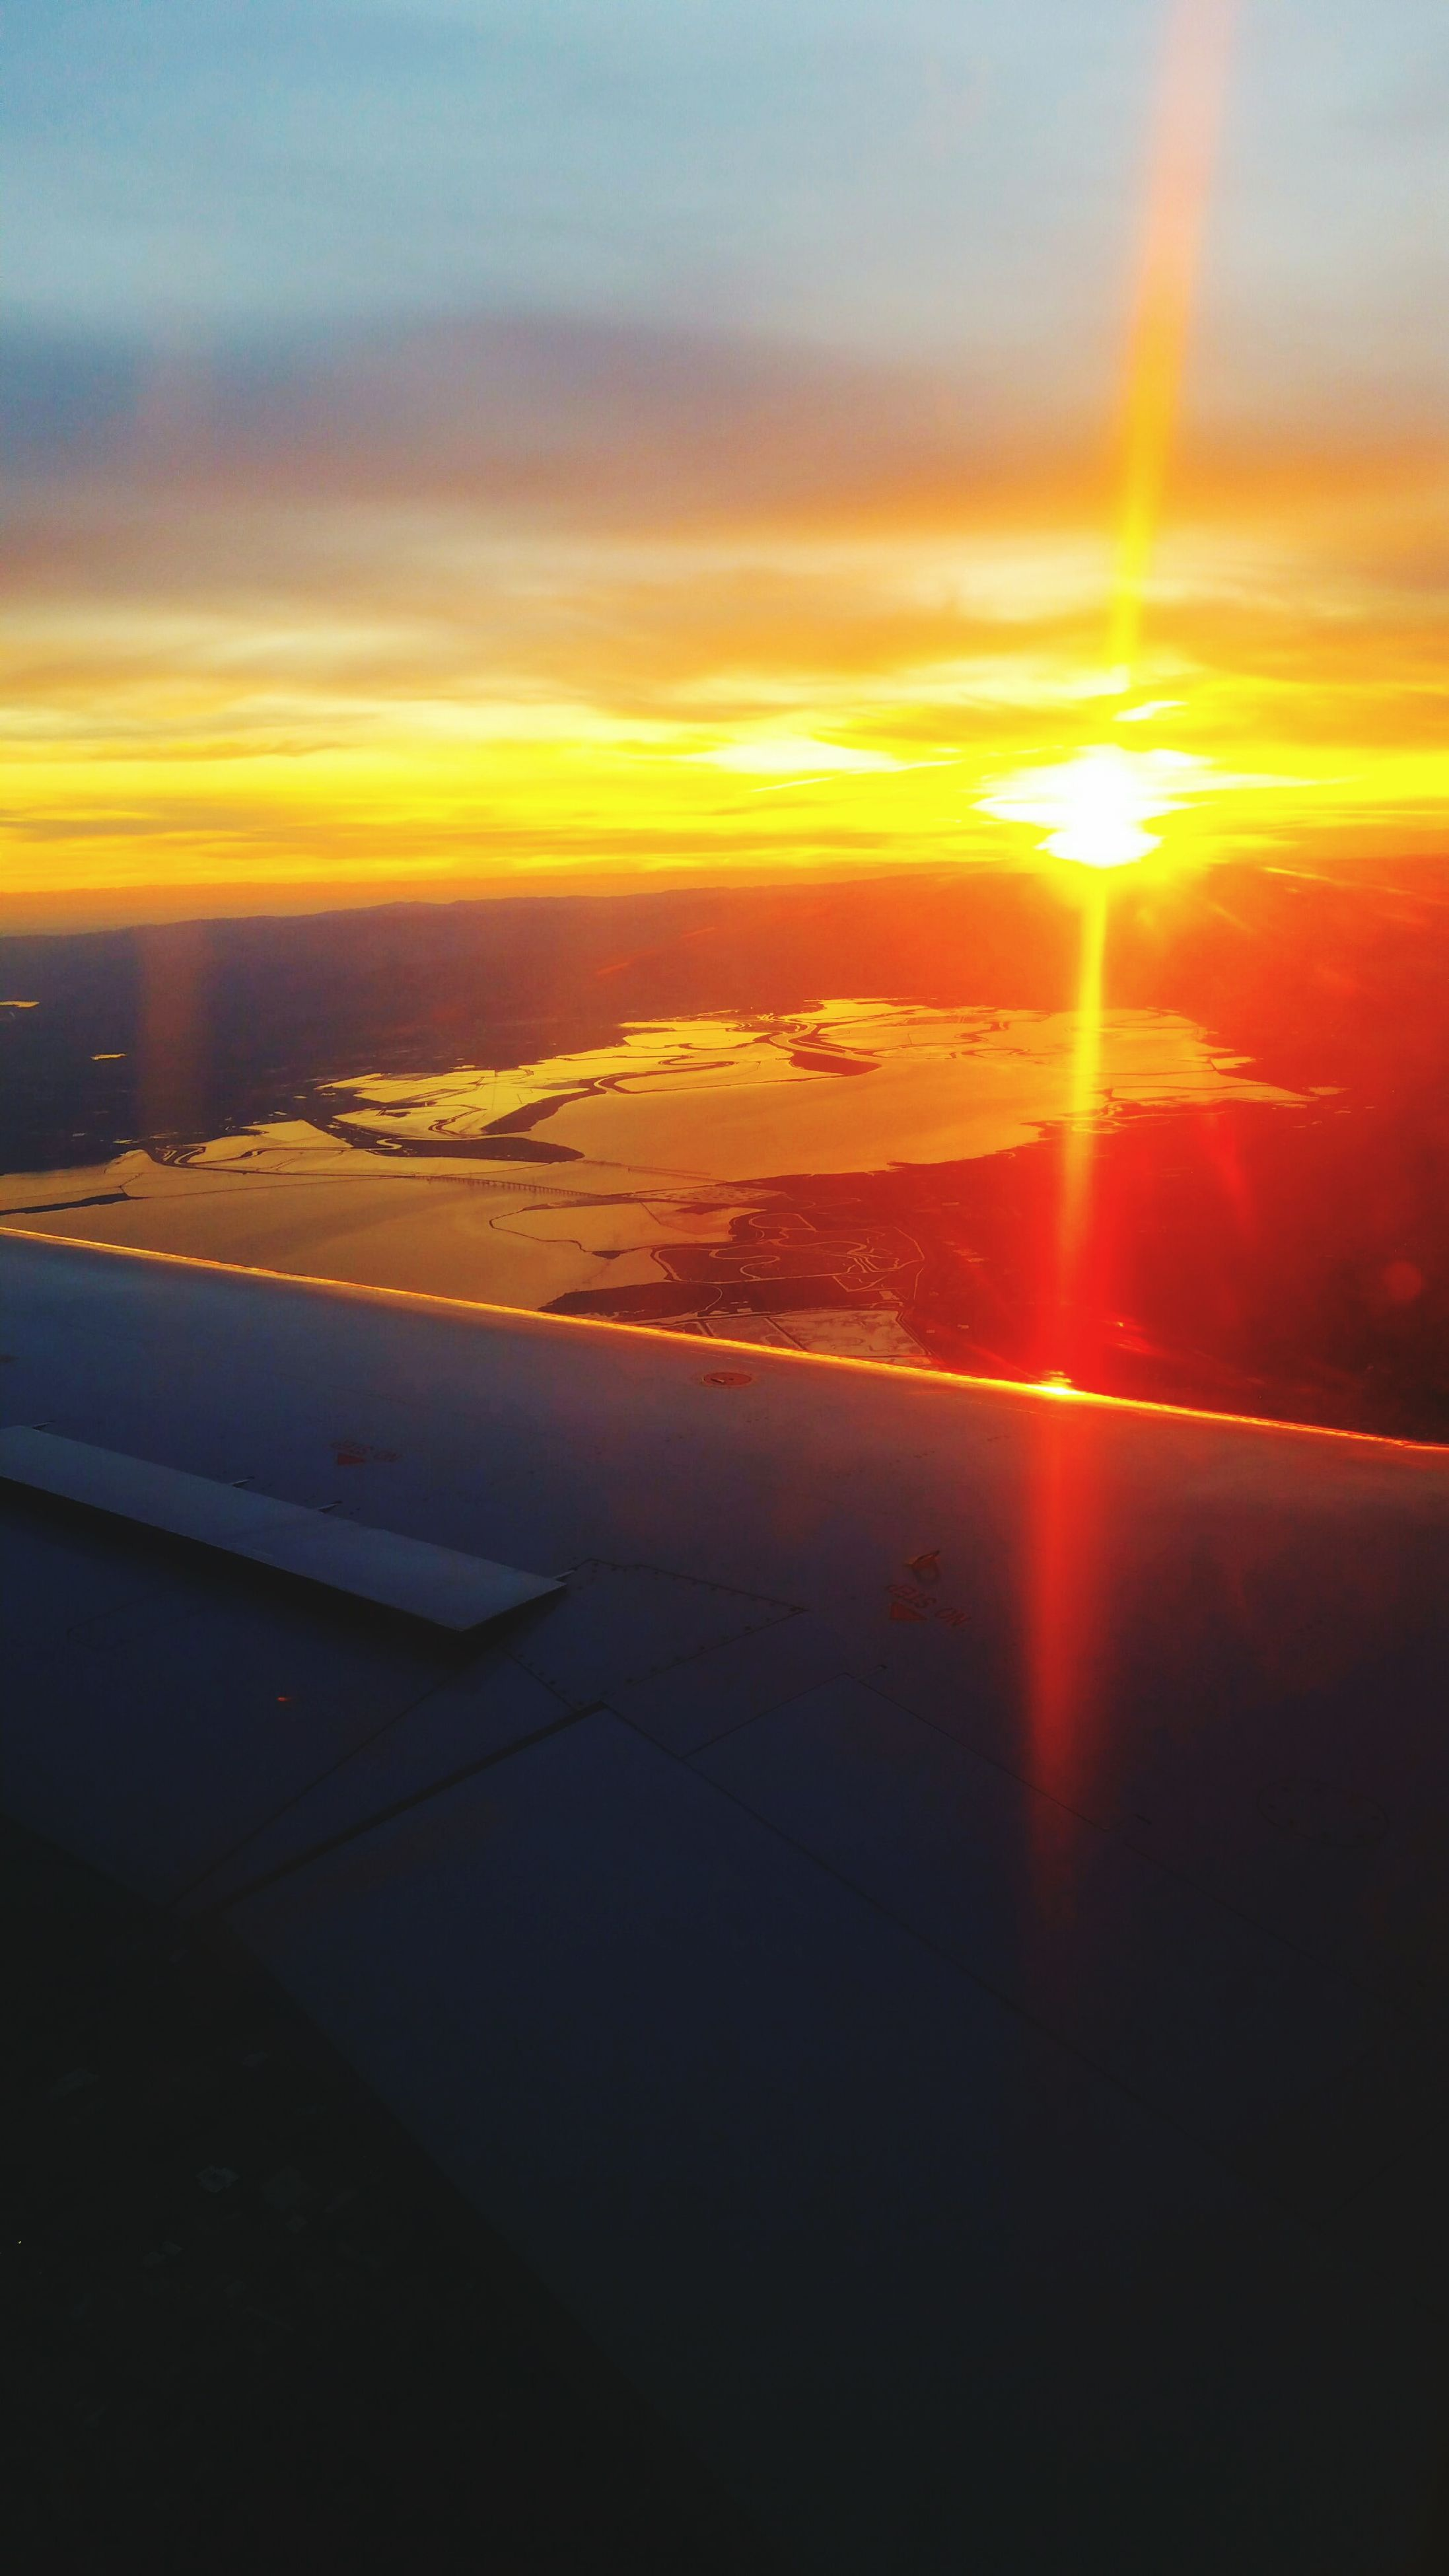 sunset, sun, airplane, sky, flying, transportation, scenics, orange color, air vehicle, cloud - sky, beauty in nature, aerial view, aircraft wing, sunlight, mode of transport, nature, sunbeam, tranquil scene, tranquility, travel